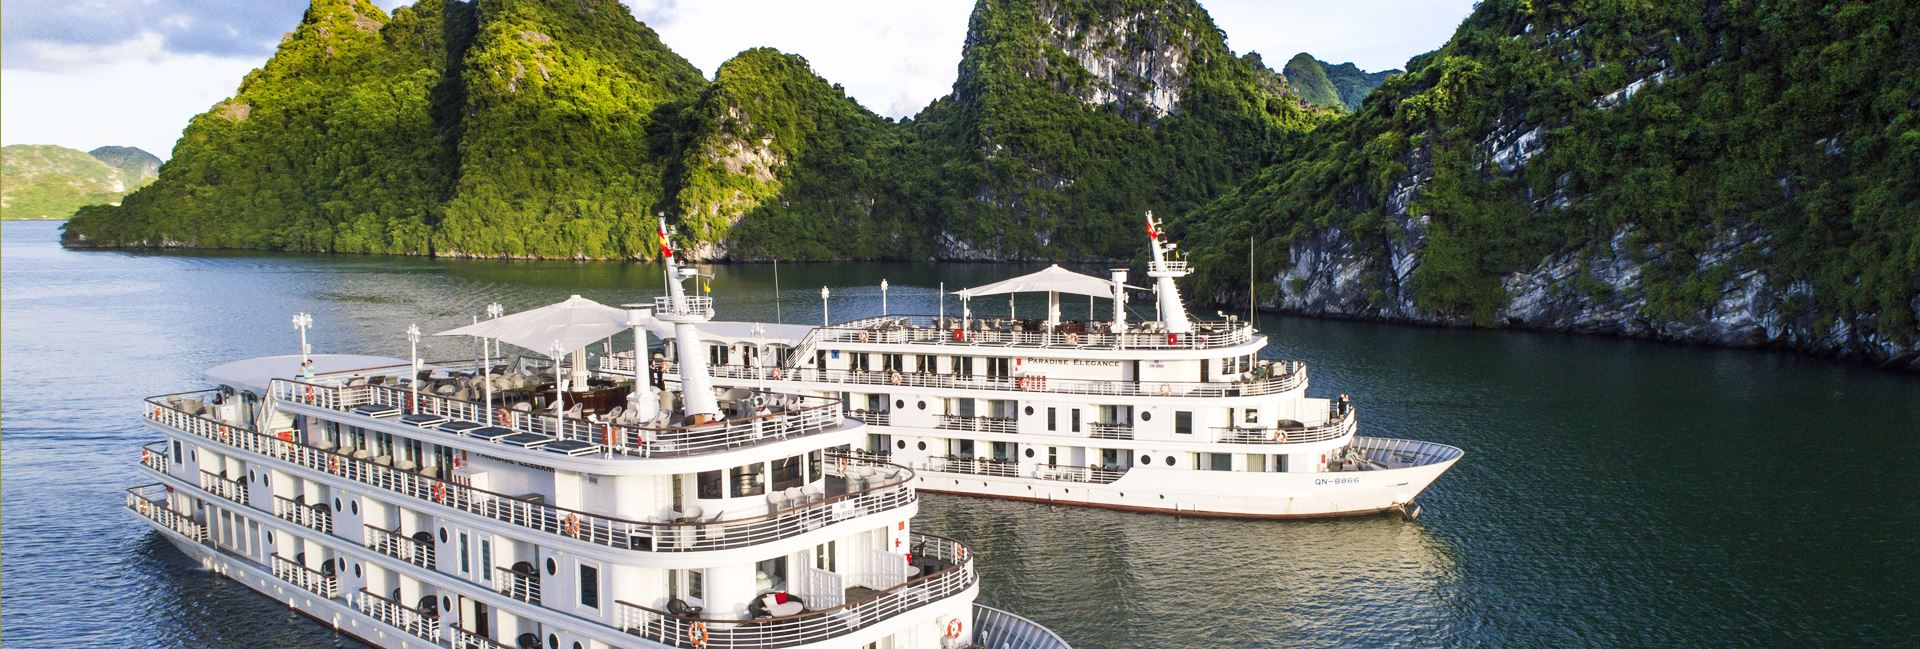 Safety on Paradise Cruise in Halong Bay